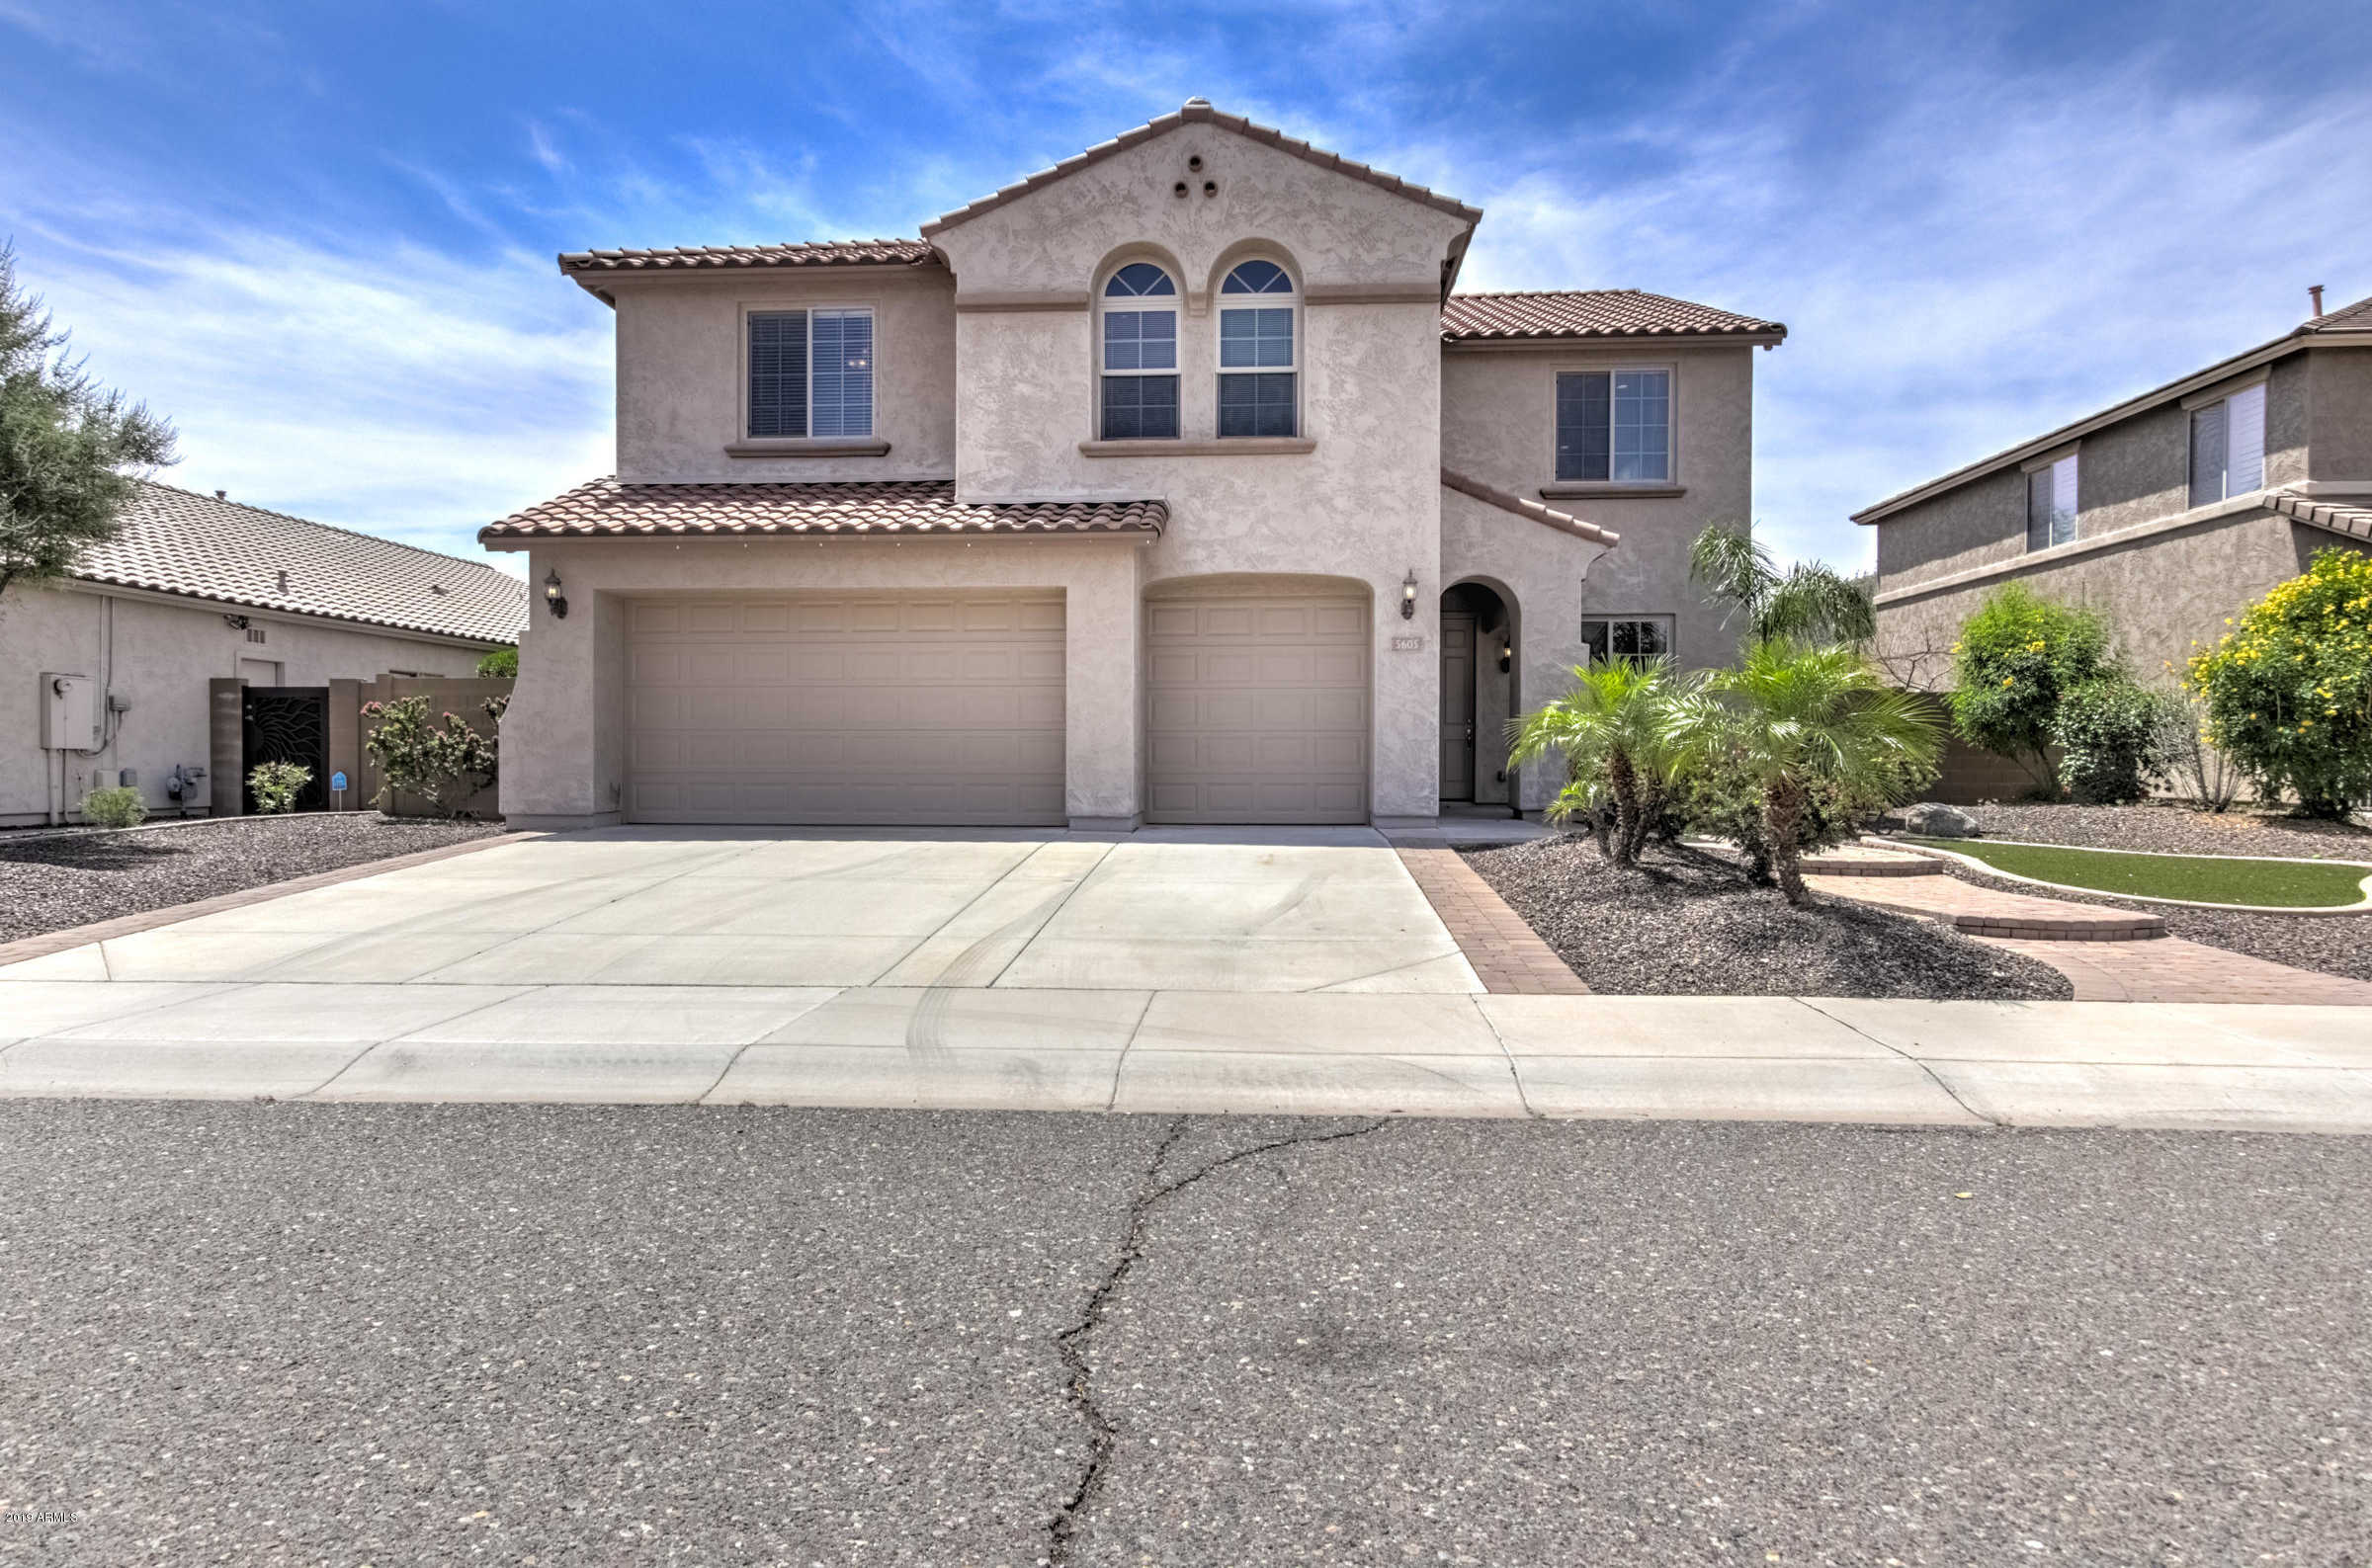 $435,000 - 4Br/4Ba - Home for Sale in Stetson Valley, Phoenix